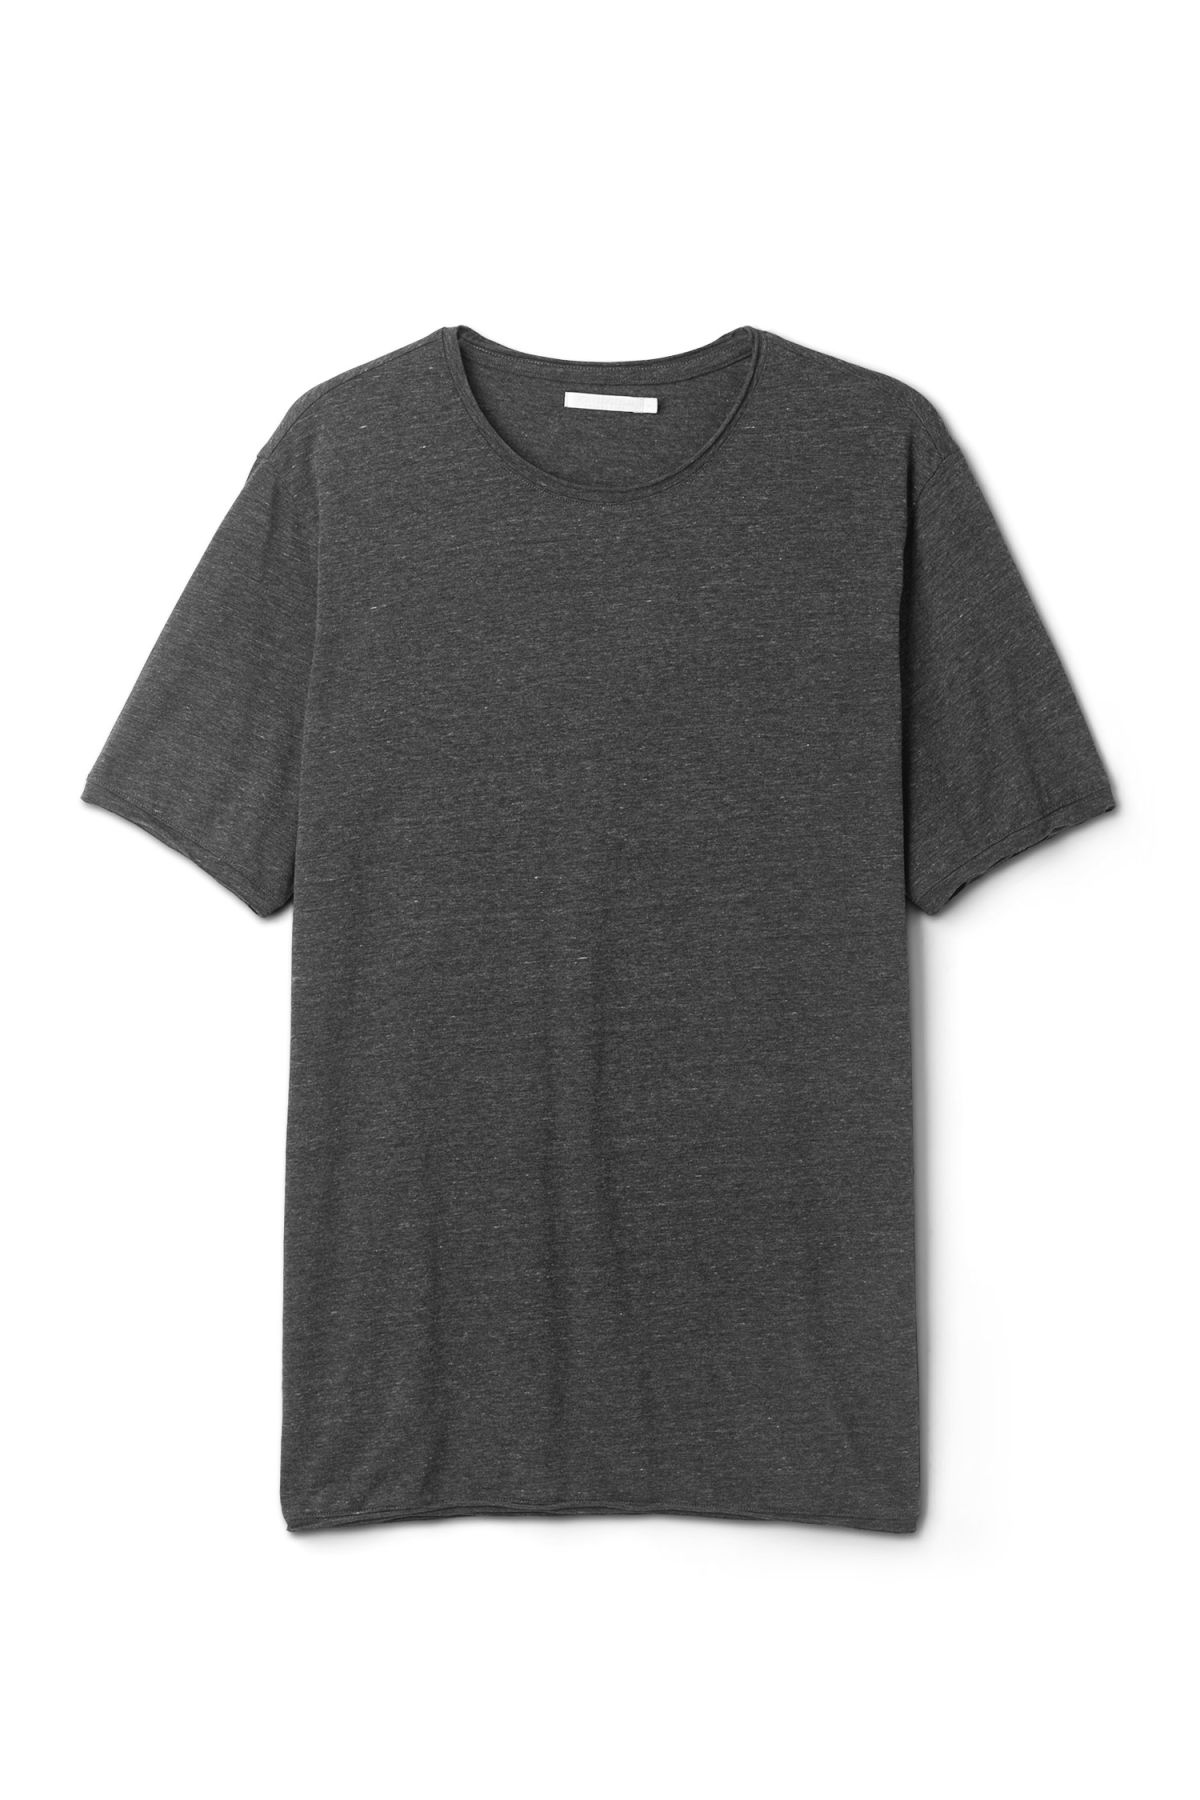 Front image of Weekday dark t-shirt in grey